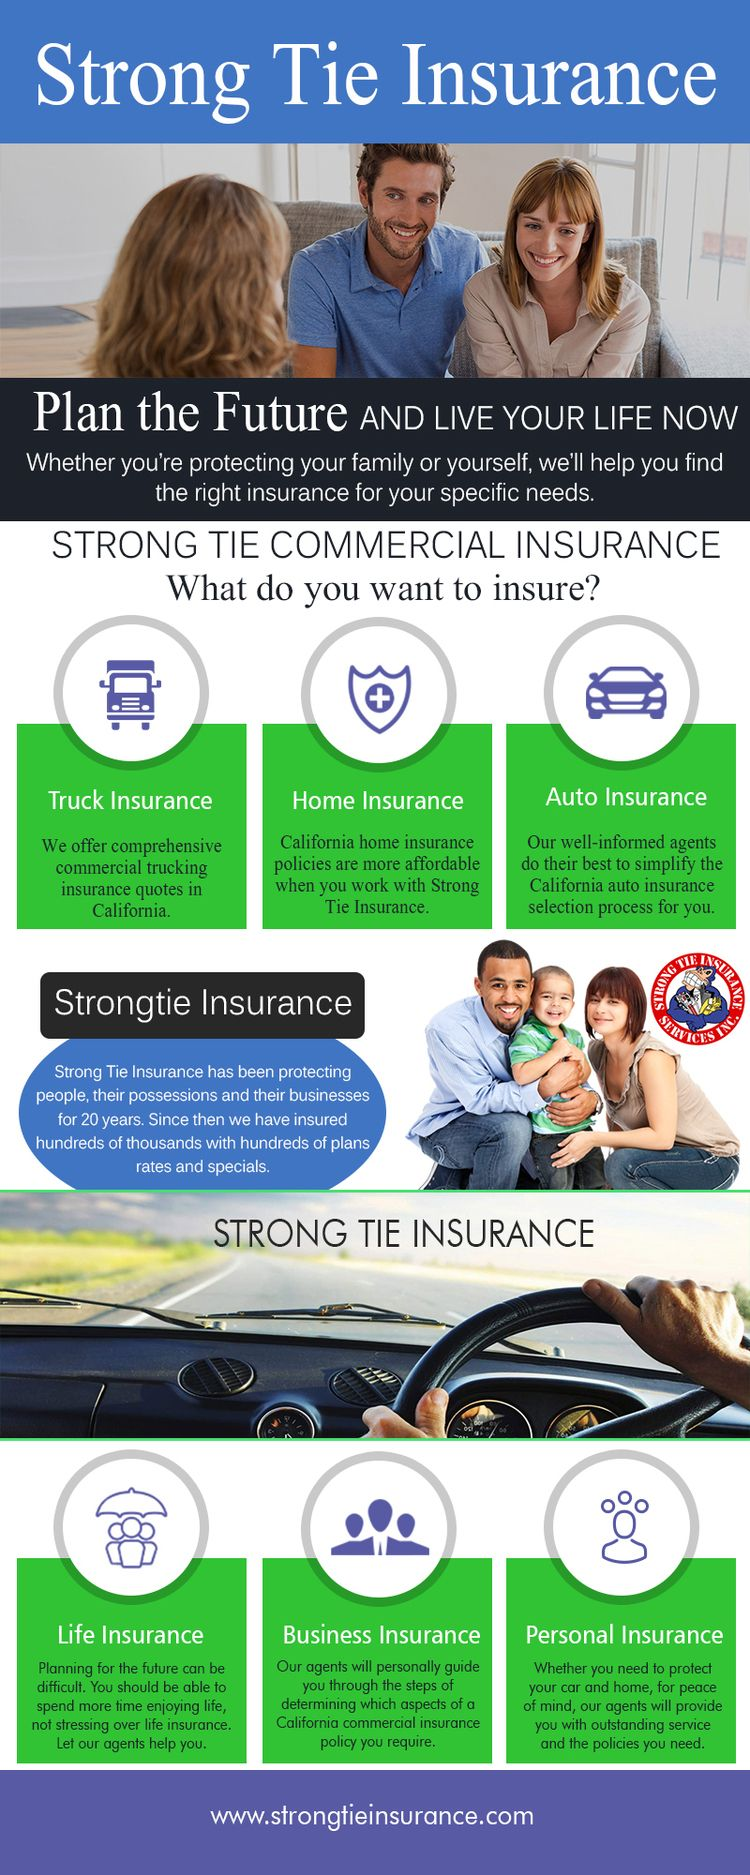 Strong Tie Commercial Truck Ins - strongtiecommercialtruckinginsurance | ello